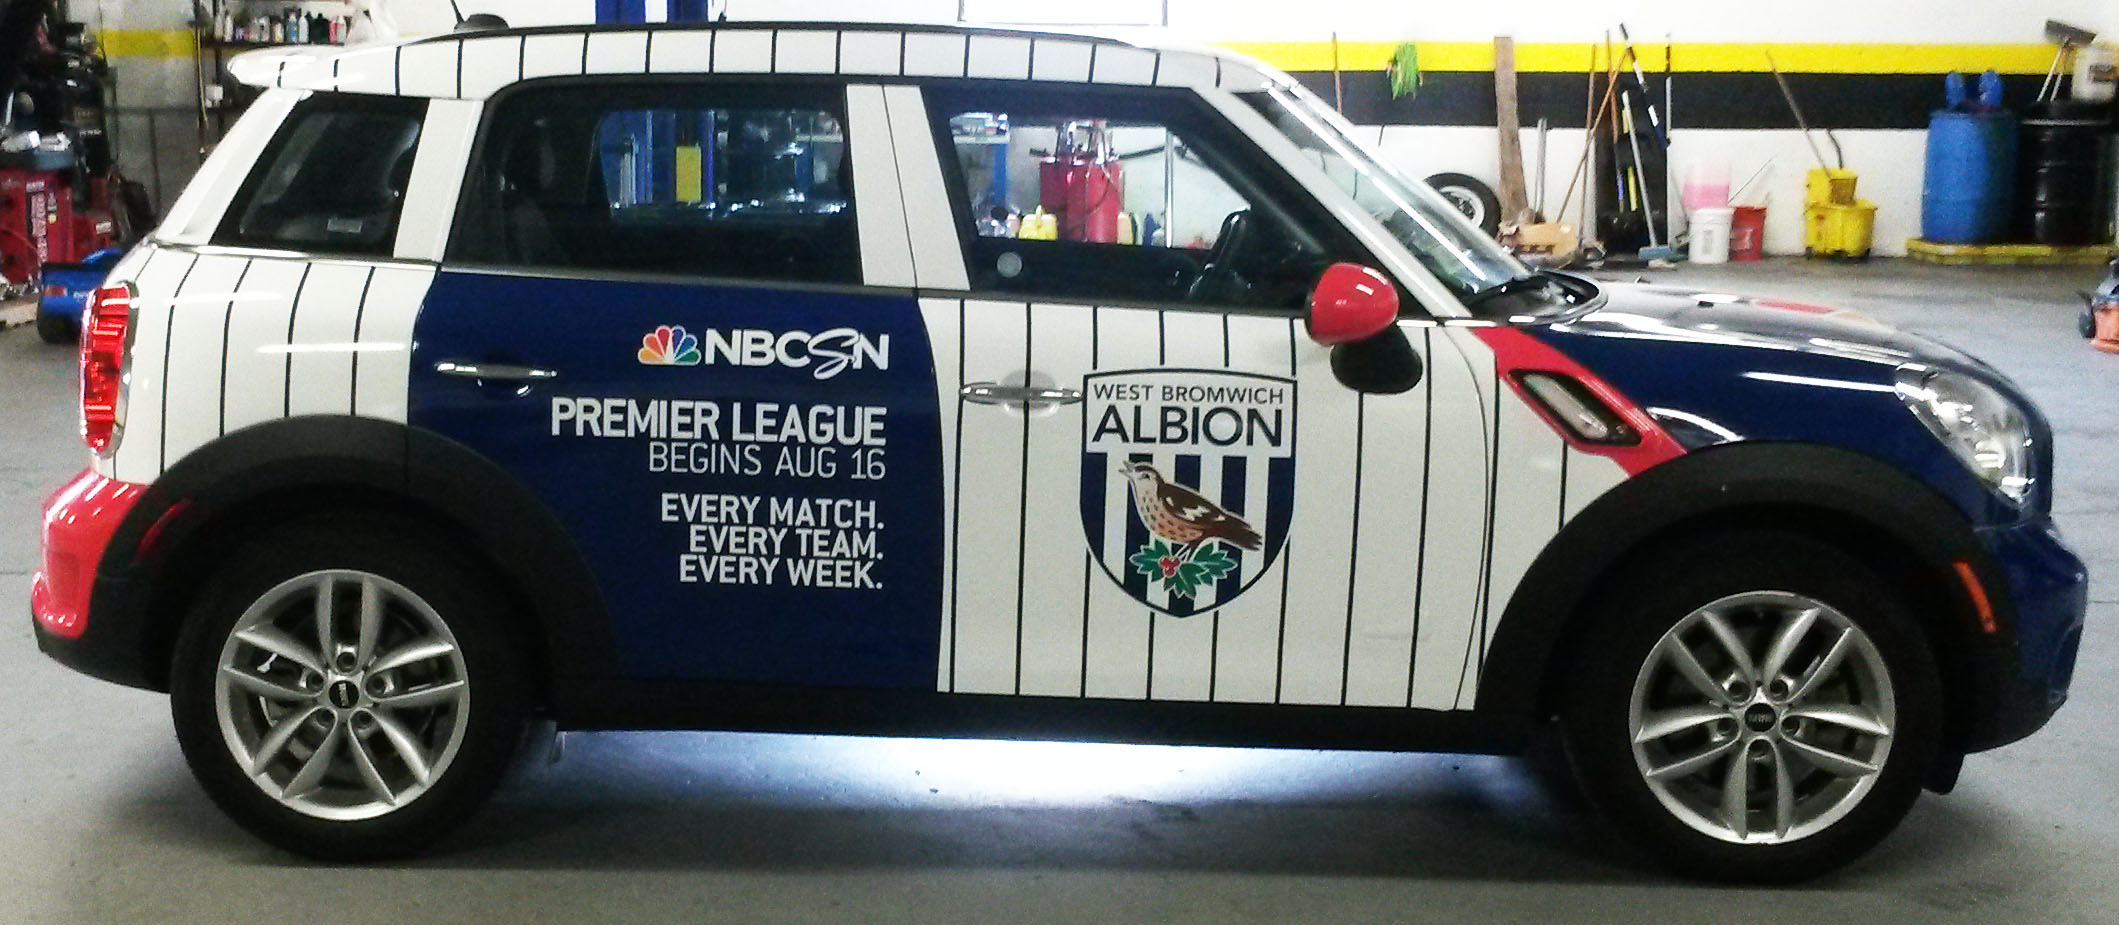 Car wrapped for Barclay Premier League.